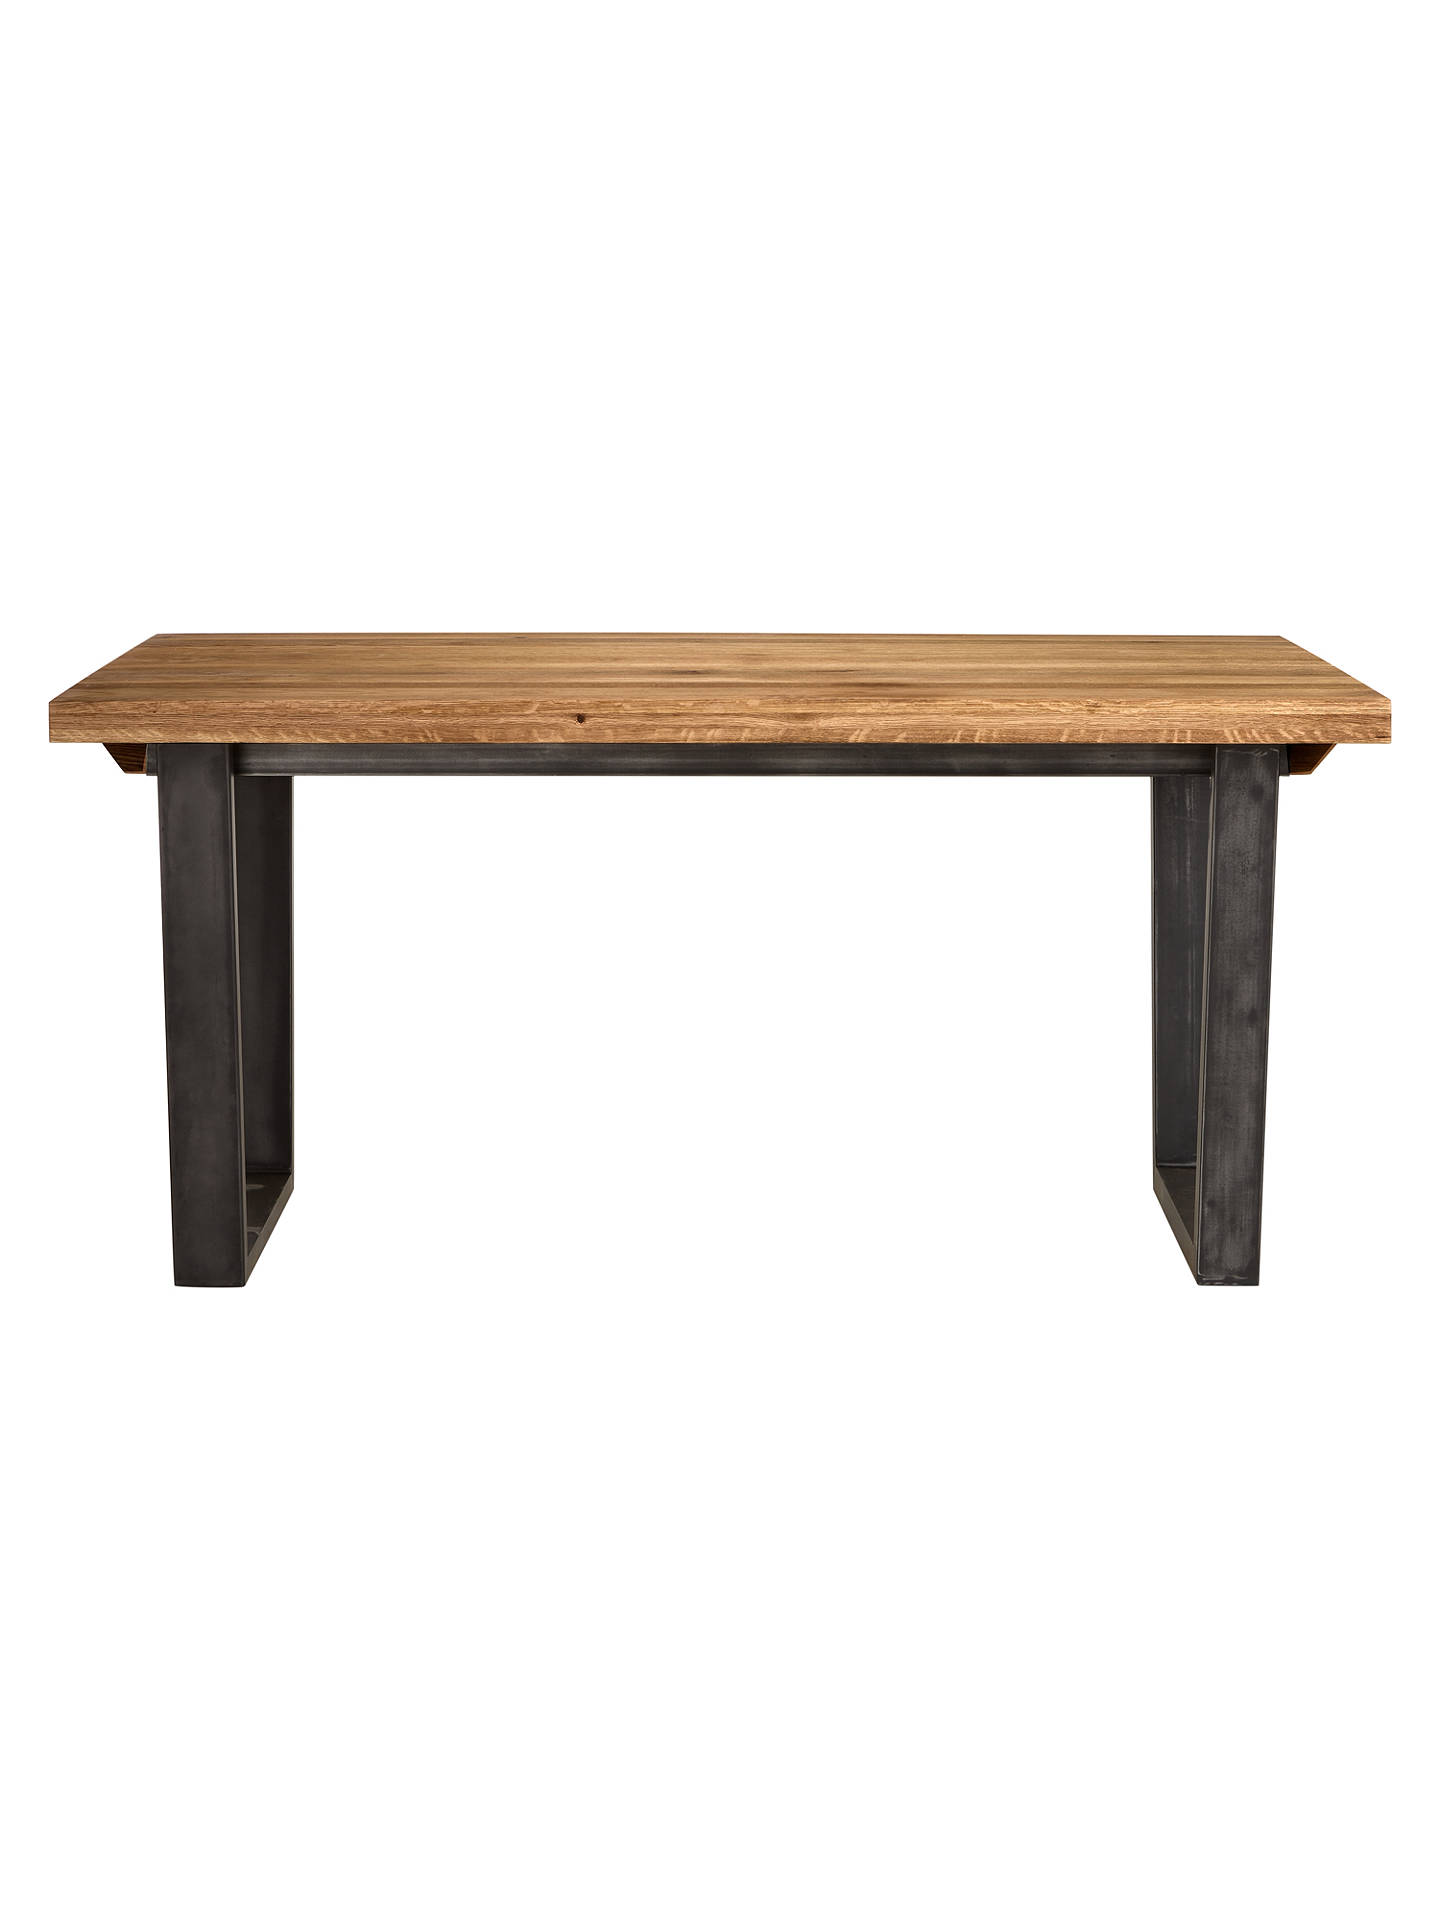 BuyJohn Lewis & Partners Calia 6-10 Seater Extending Dining Table, Oak Online at johnlewis.com